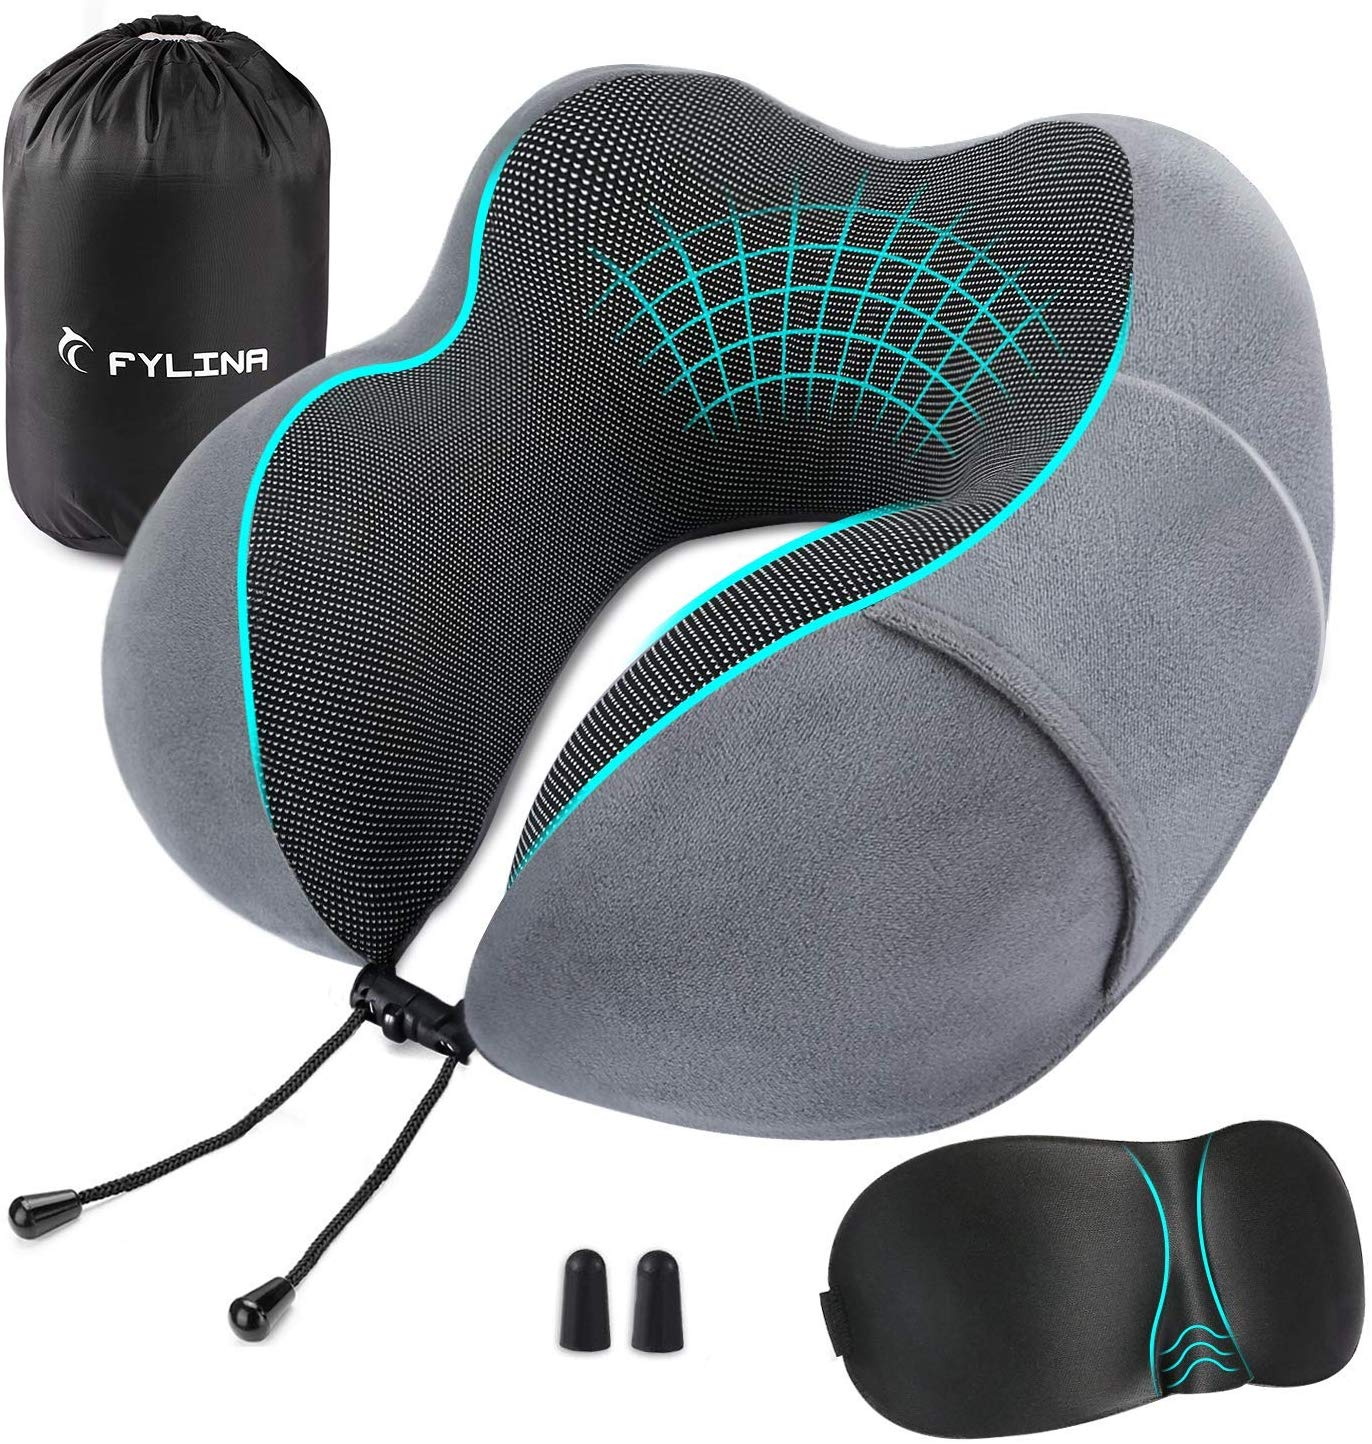 Memory Foam Neck Pillow with Carry Case, Eye Mask and Ear Plugs